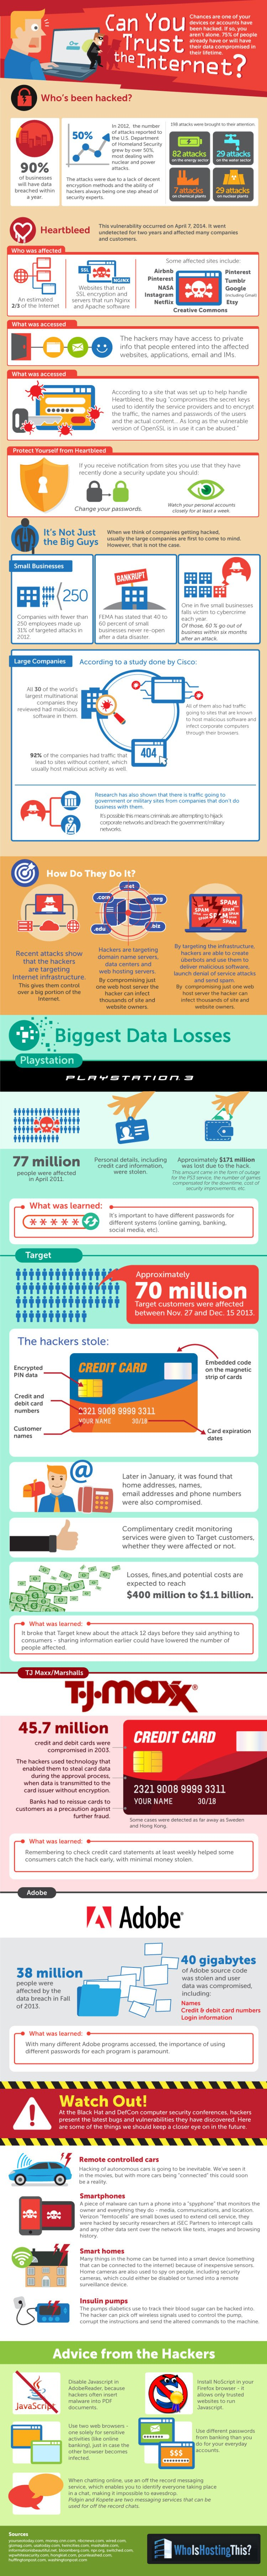 Can-You-Trust-the-Internet - Infographic